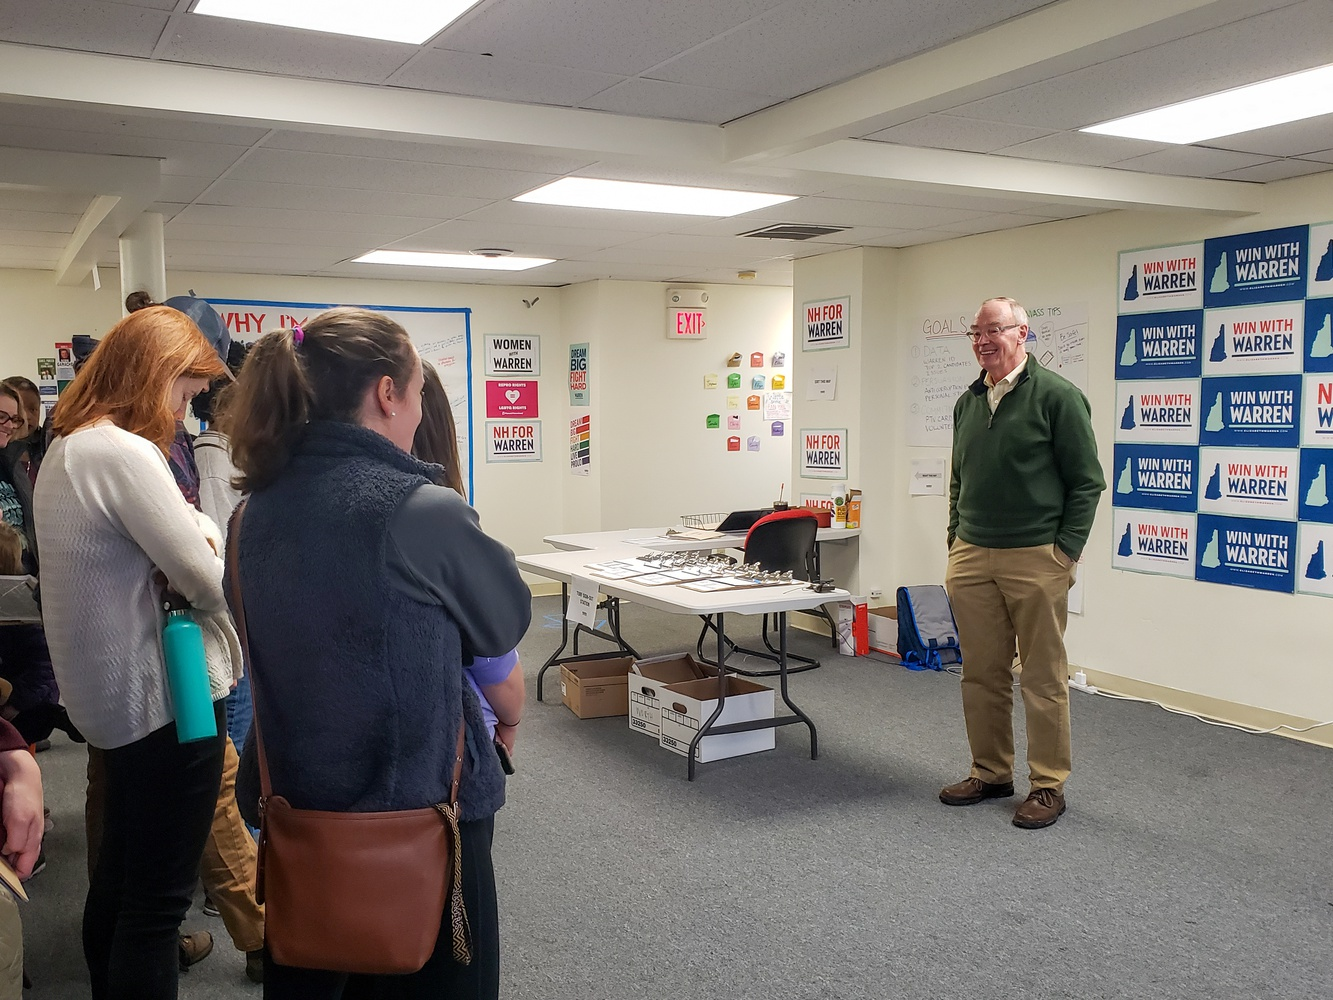 Bruce H. Mann, a professor at Harvard Law School, canvassed for Elizabeth Warren's presidential campaign in New Hampshire.